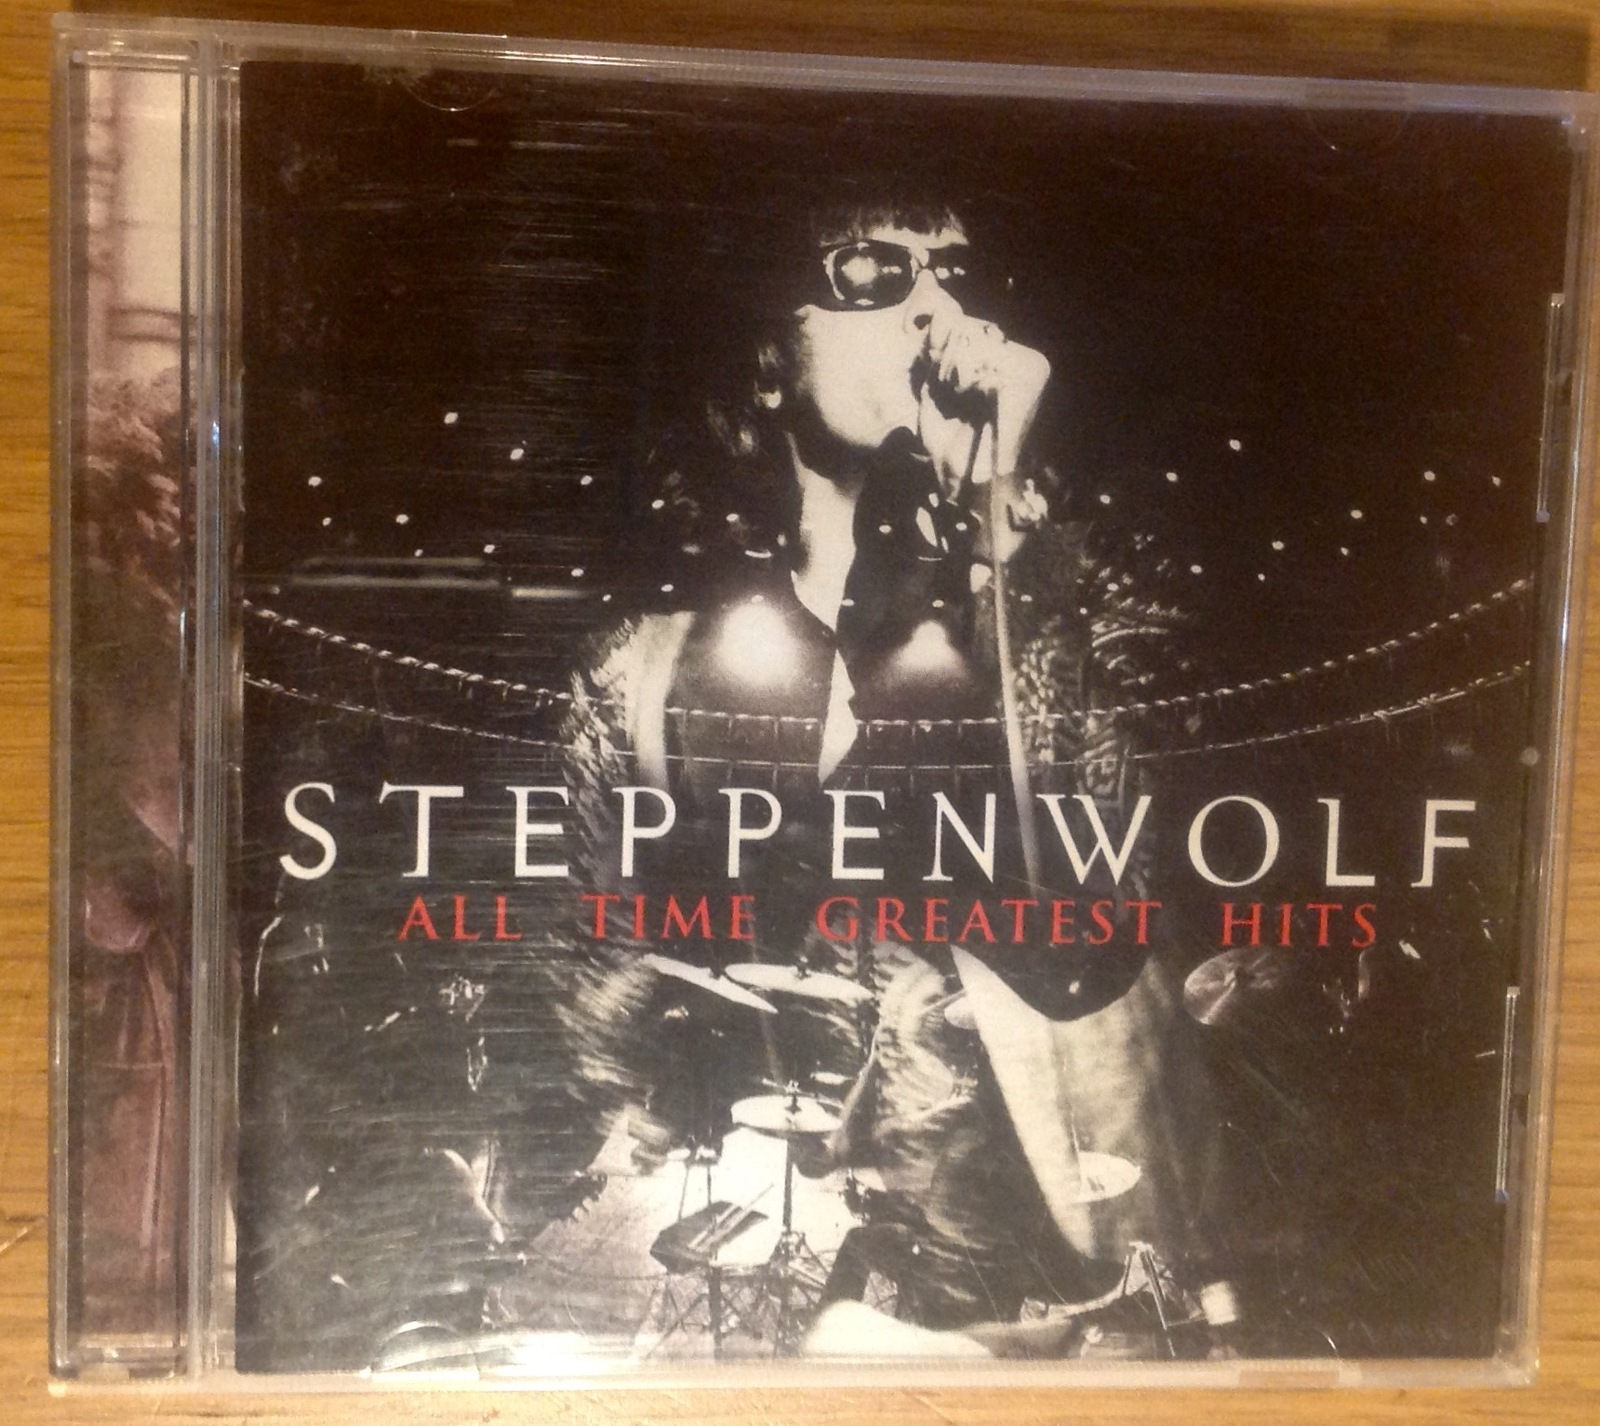 Primary image for Steppenwolf All Time Greatest Hits CD (1999) MCA Rock Best